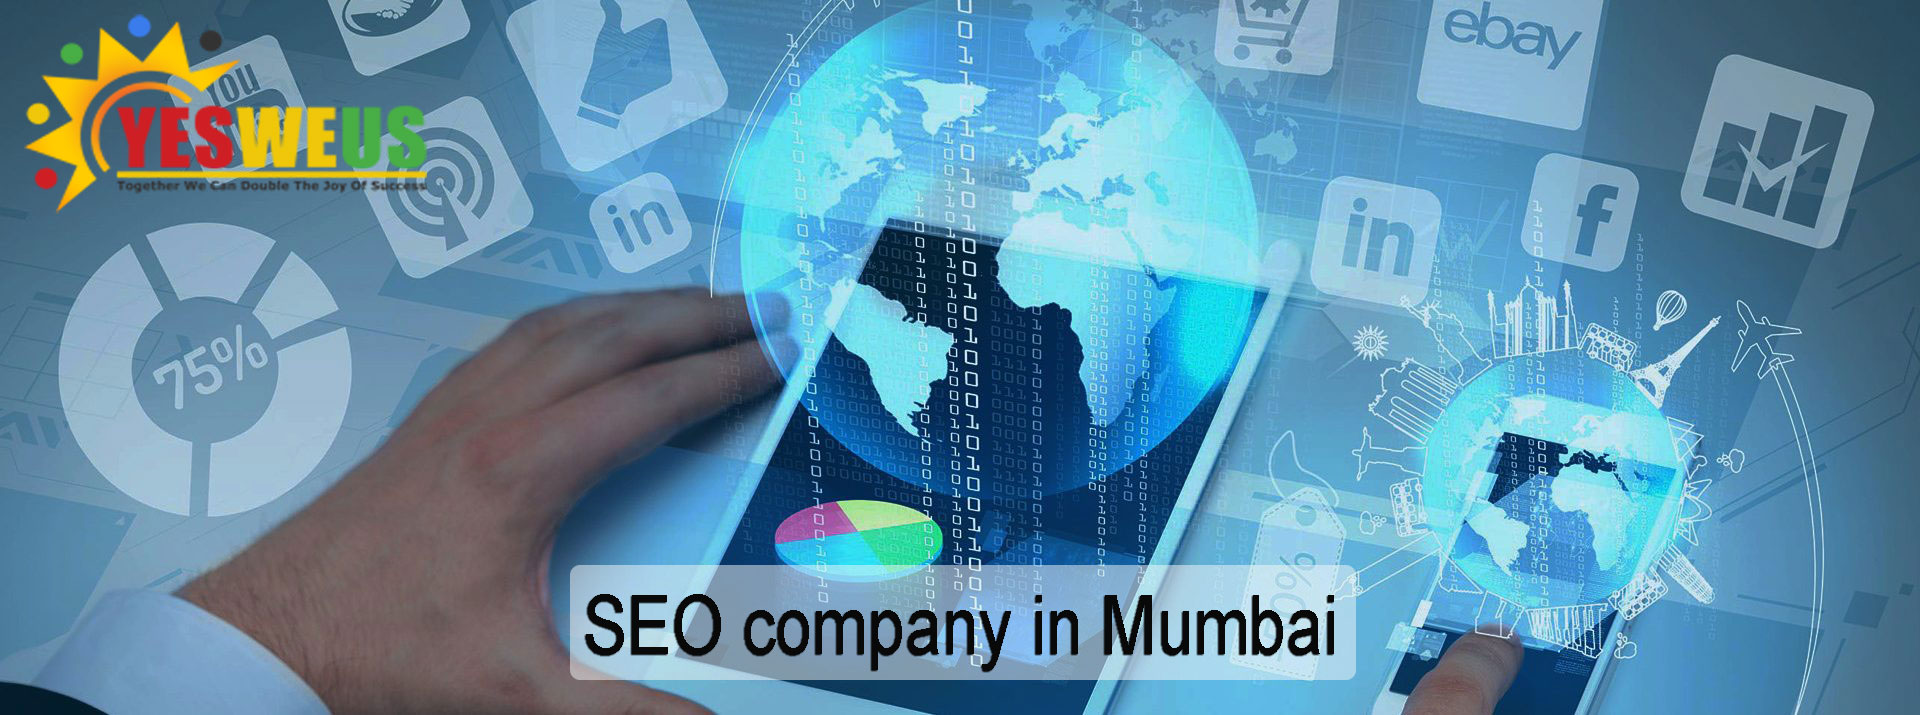 www.yesweus.in Popular SEO Company in Mumbai